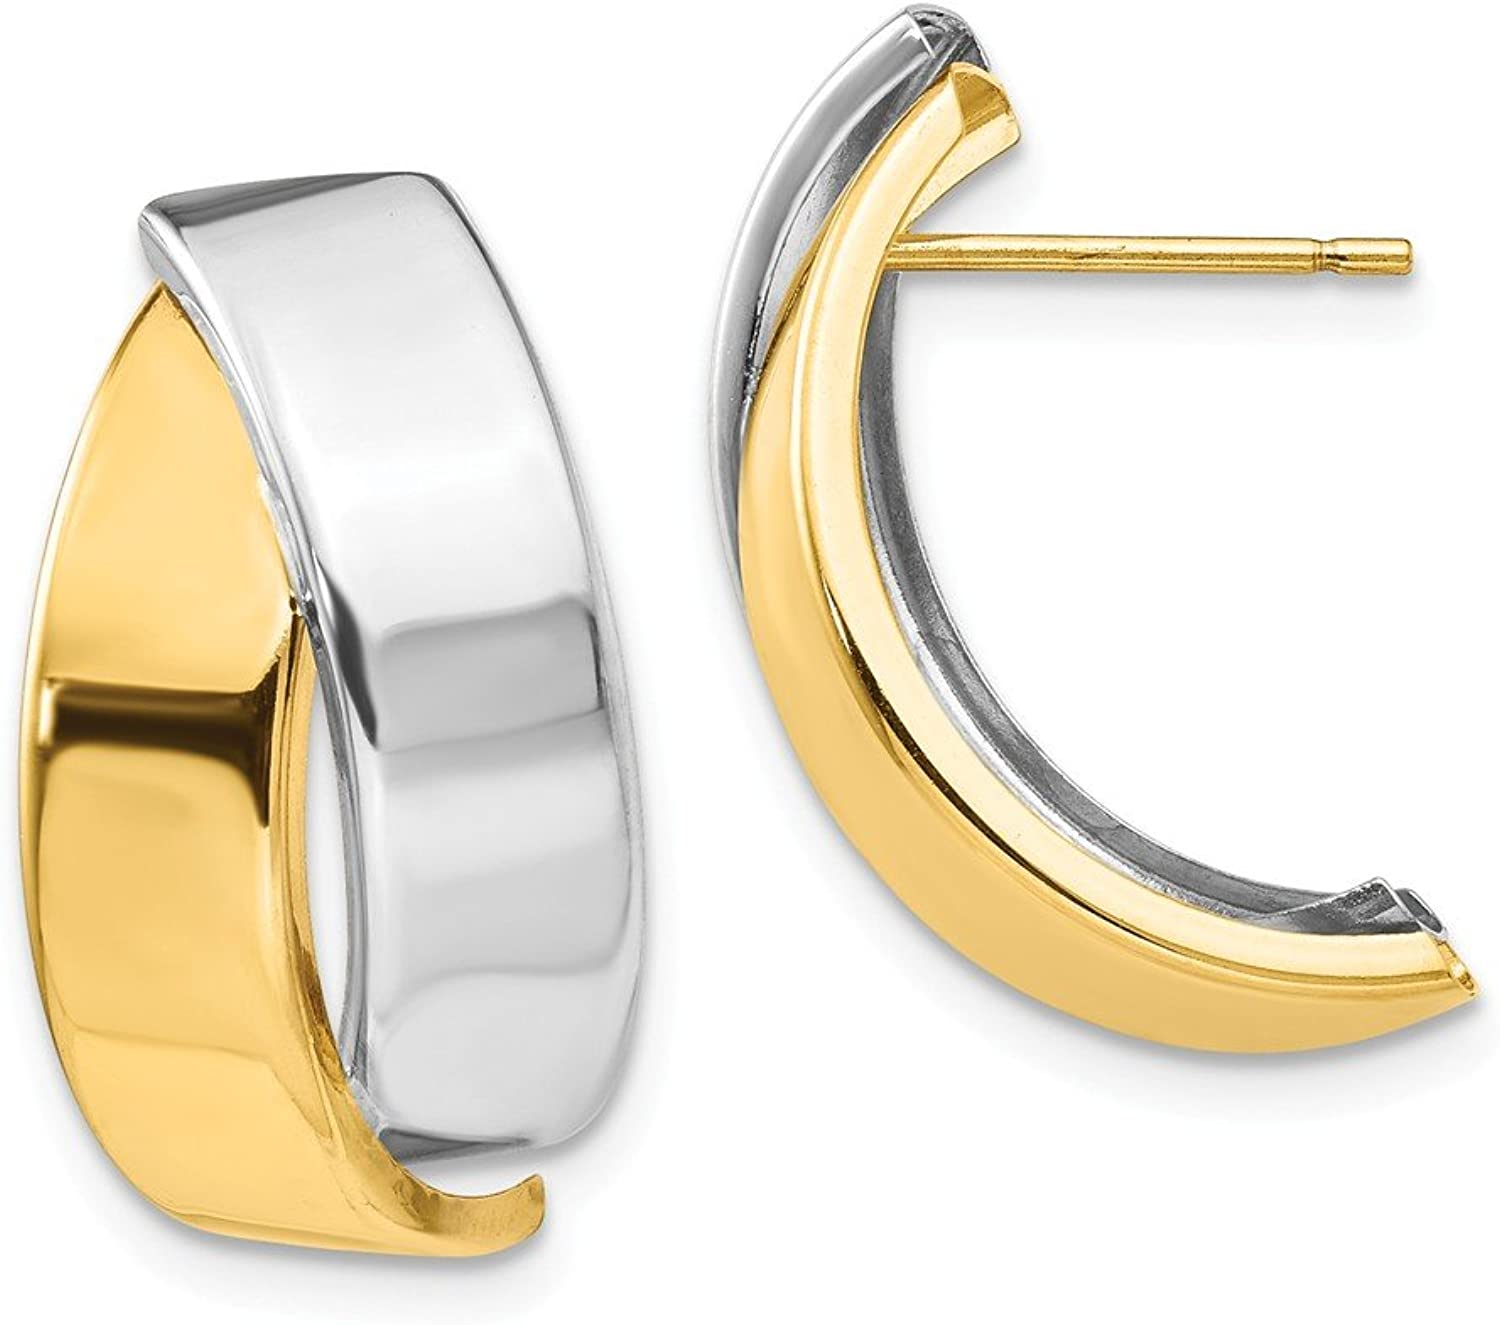 Beautiful White and yellow gold 14K Whiteandyellowgold 14k Twotone Polished Post Earrings